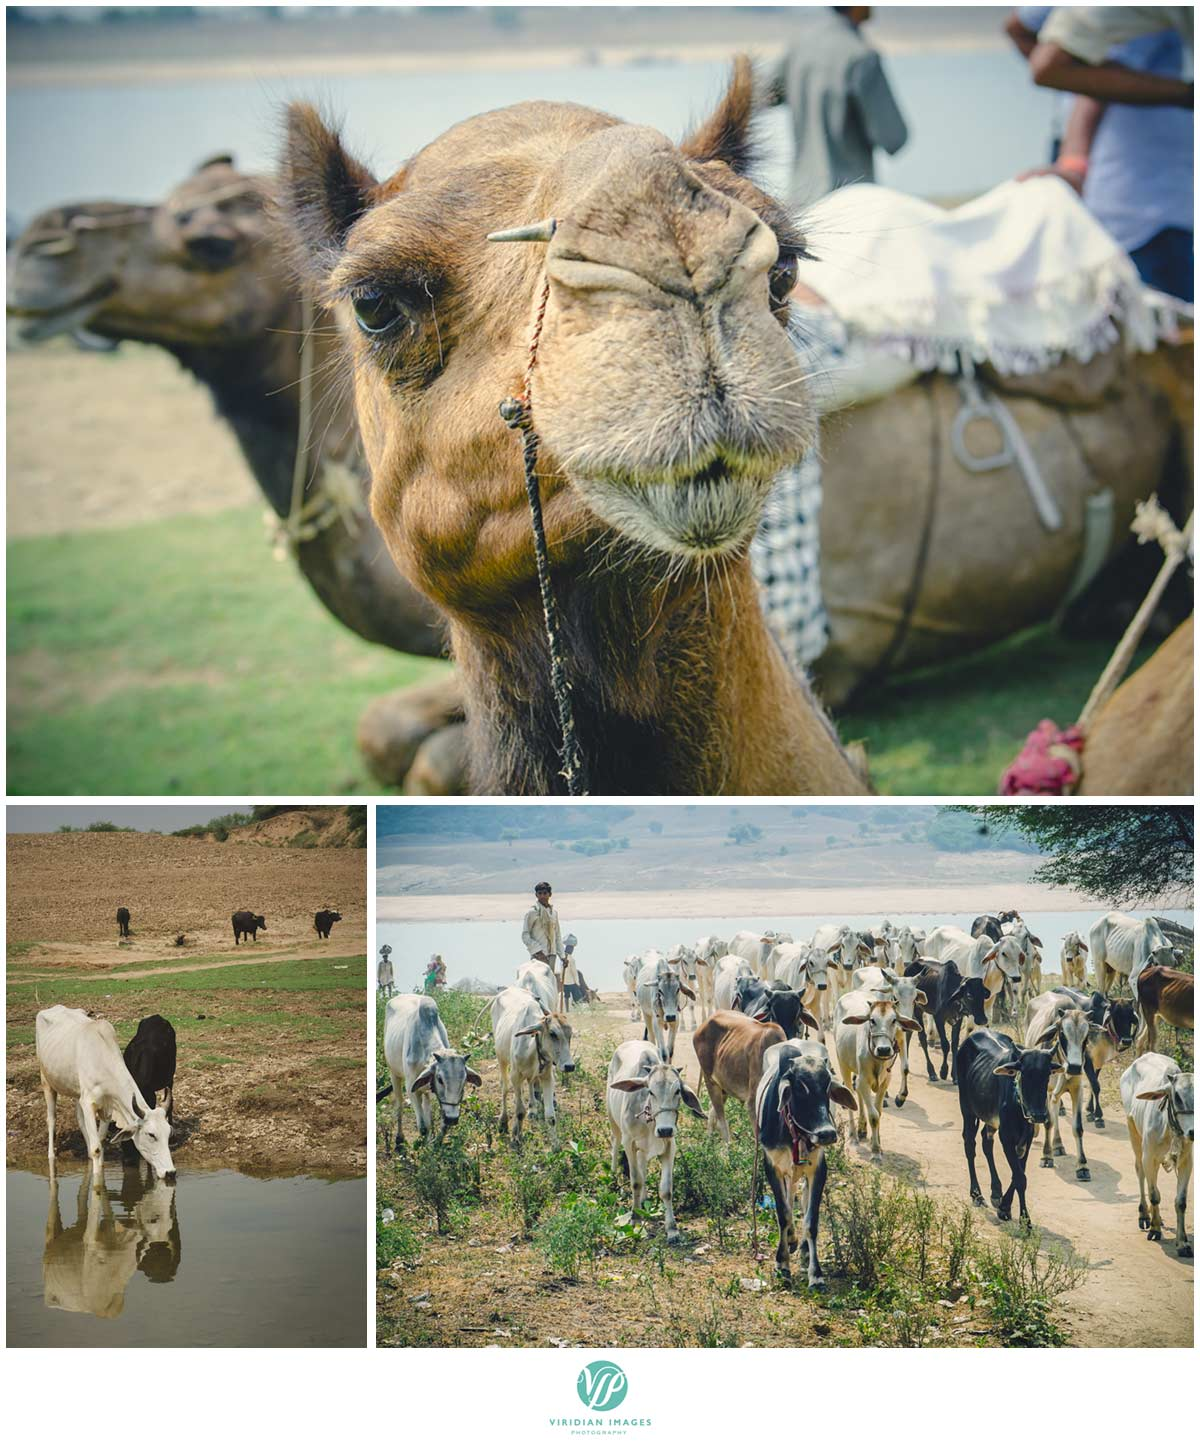 India_Chambal_Safari_Viridian_Images_photo_11